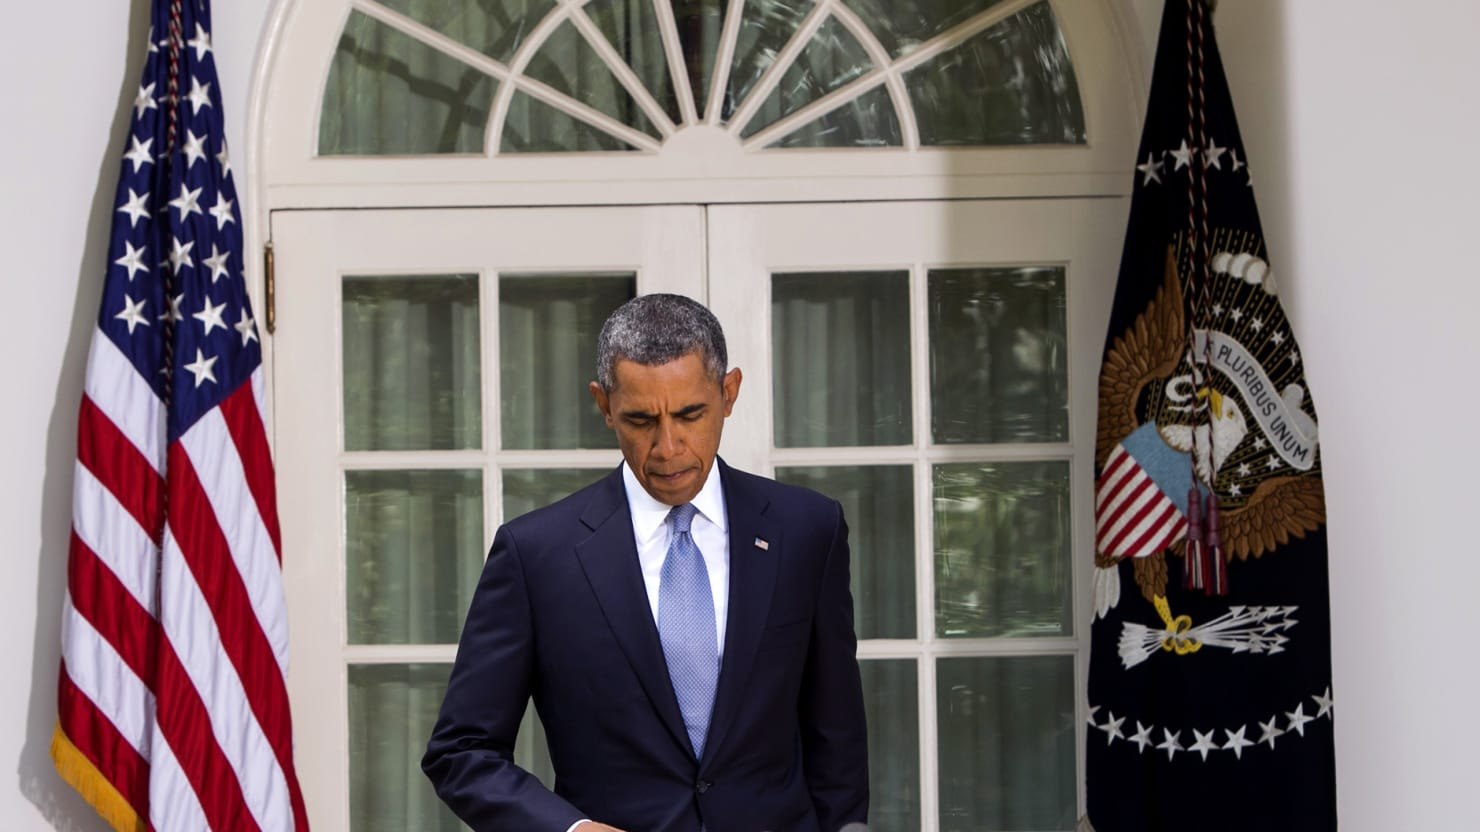 Obama Decision on Syria Good for U.S Democracy, but His Case Is Weak